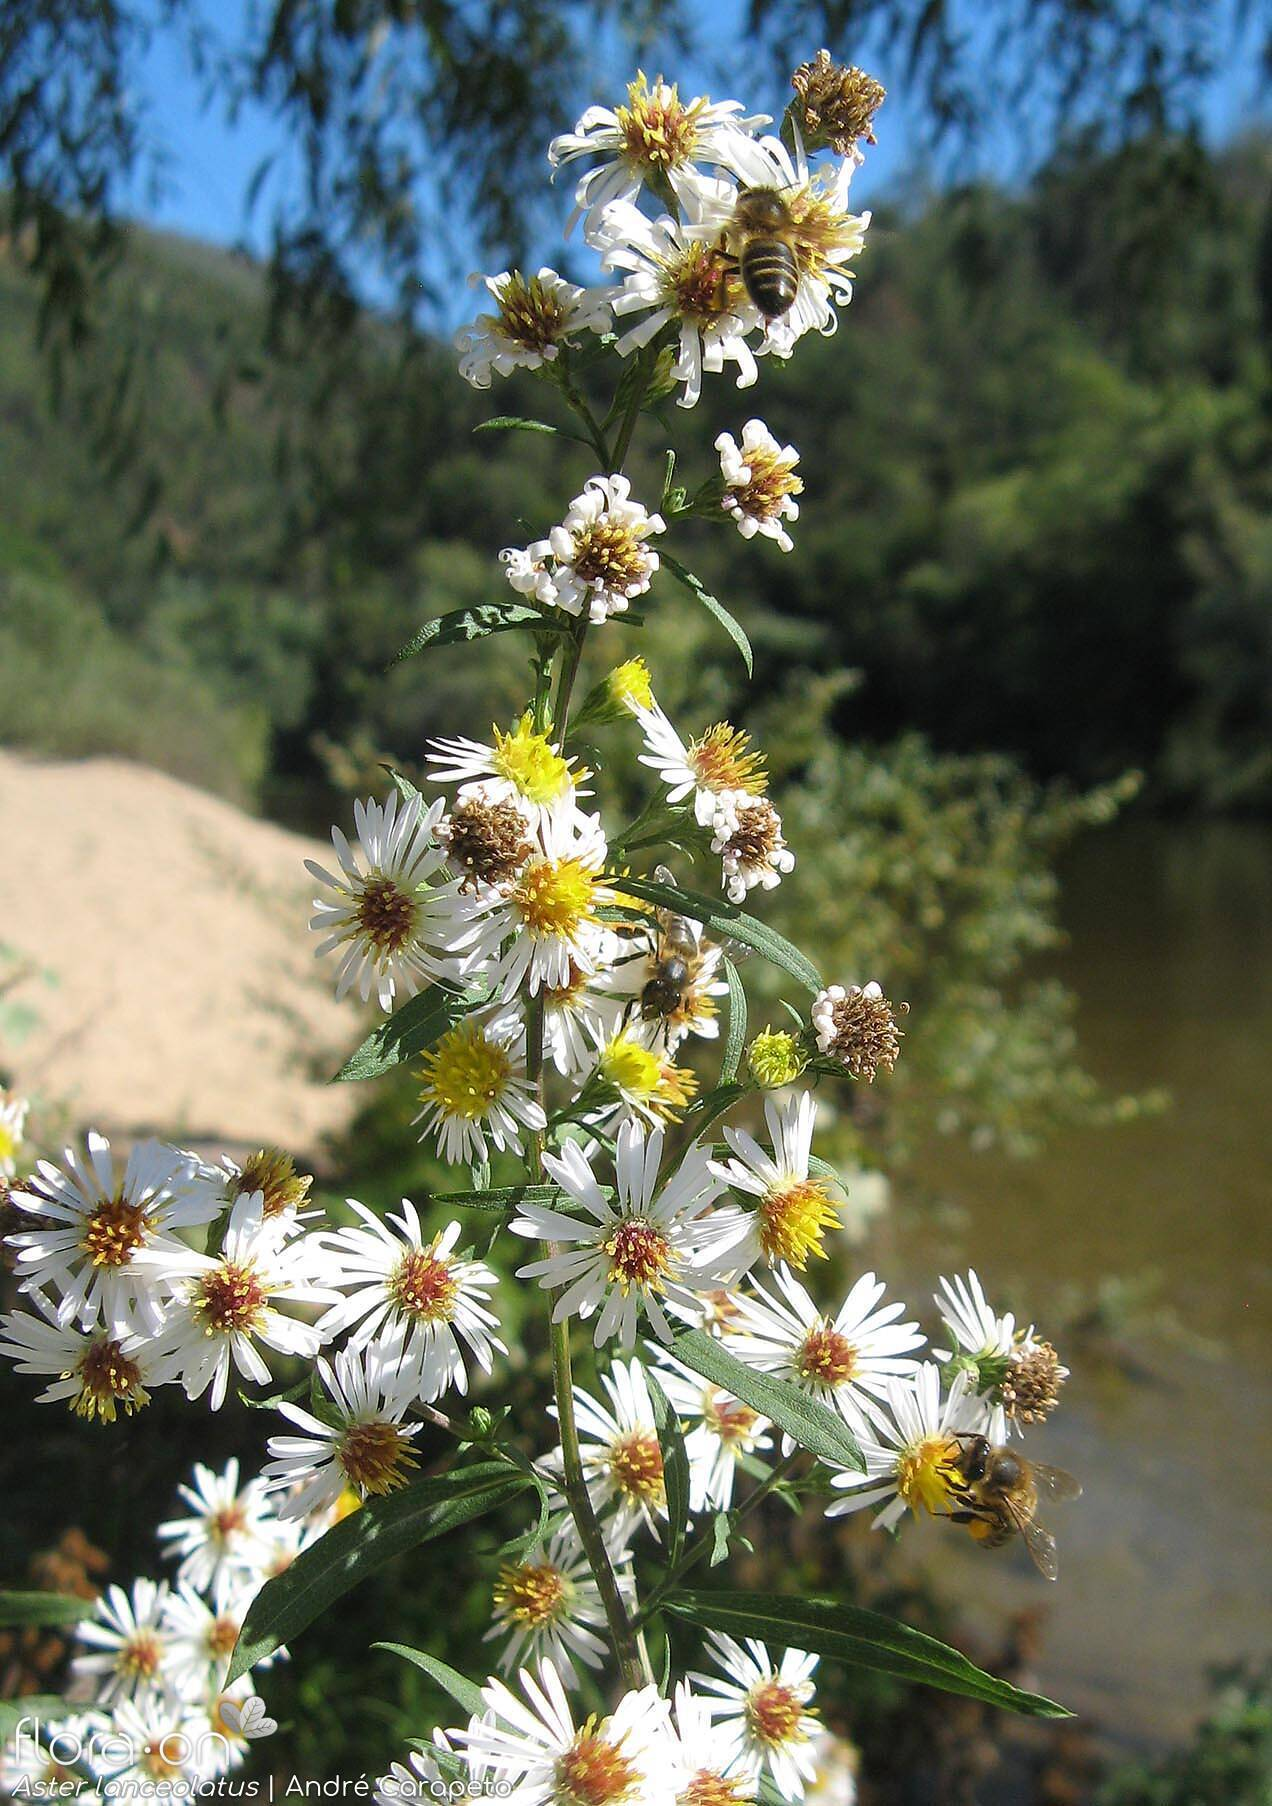 Aster lanceolatus - Flor (geral) | André Carapeto; CC BY-NC 4.0